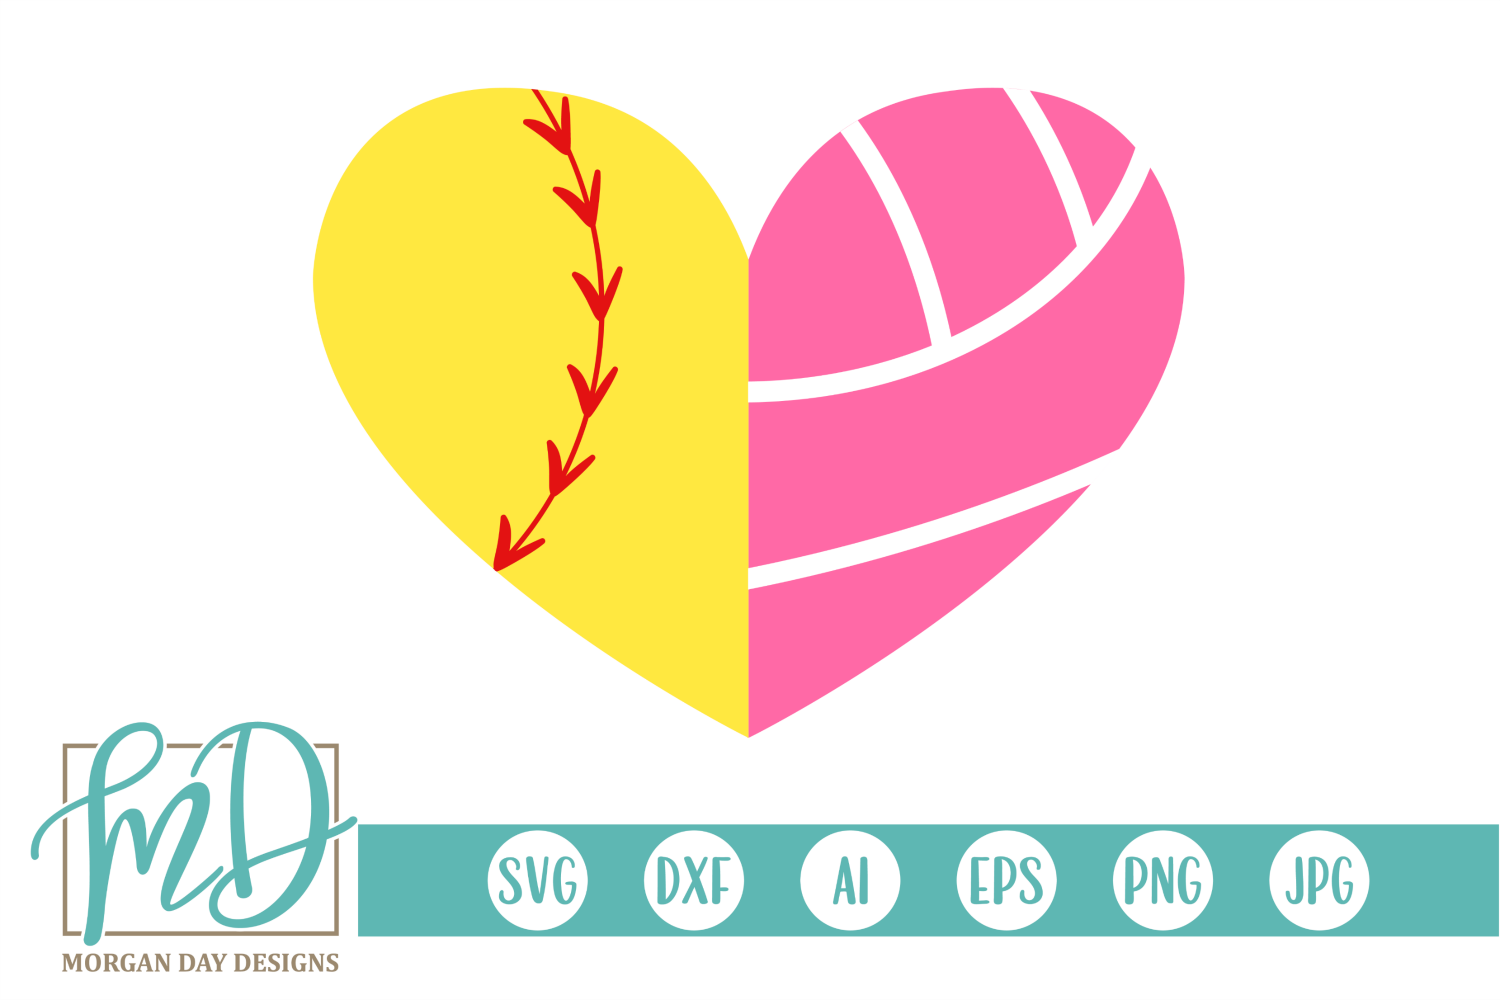 Download Free Softball Volleyball Heart Svg Graphic By Morgan Day Designs for Cricut Explore, Silhouette and other cutting machines.